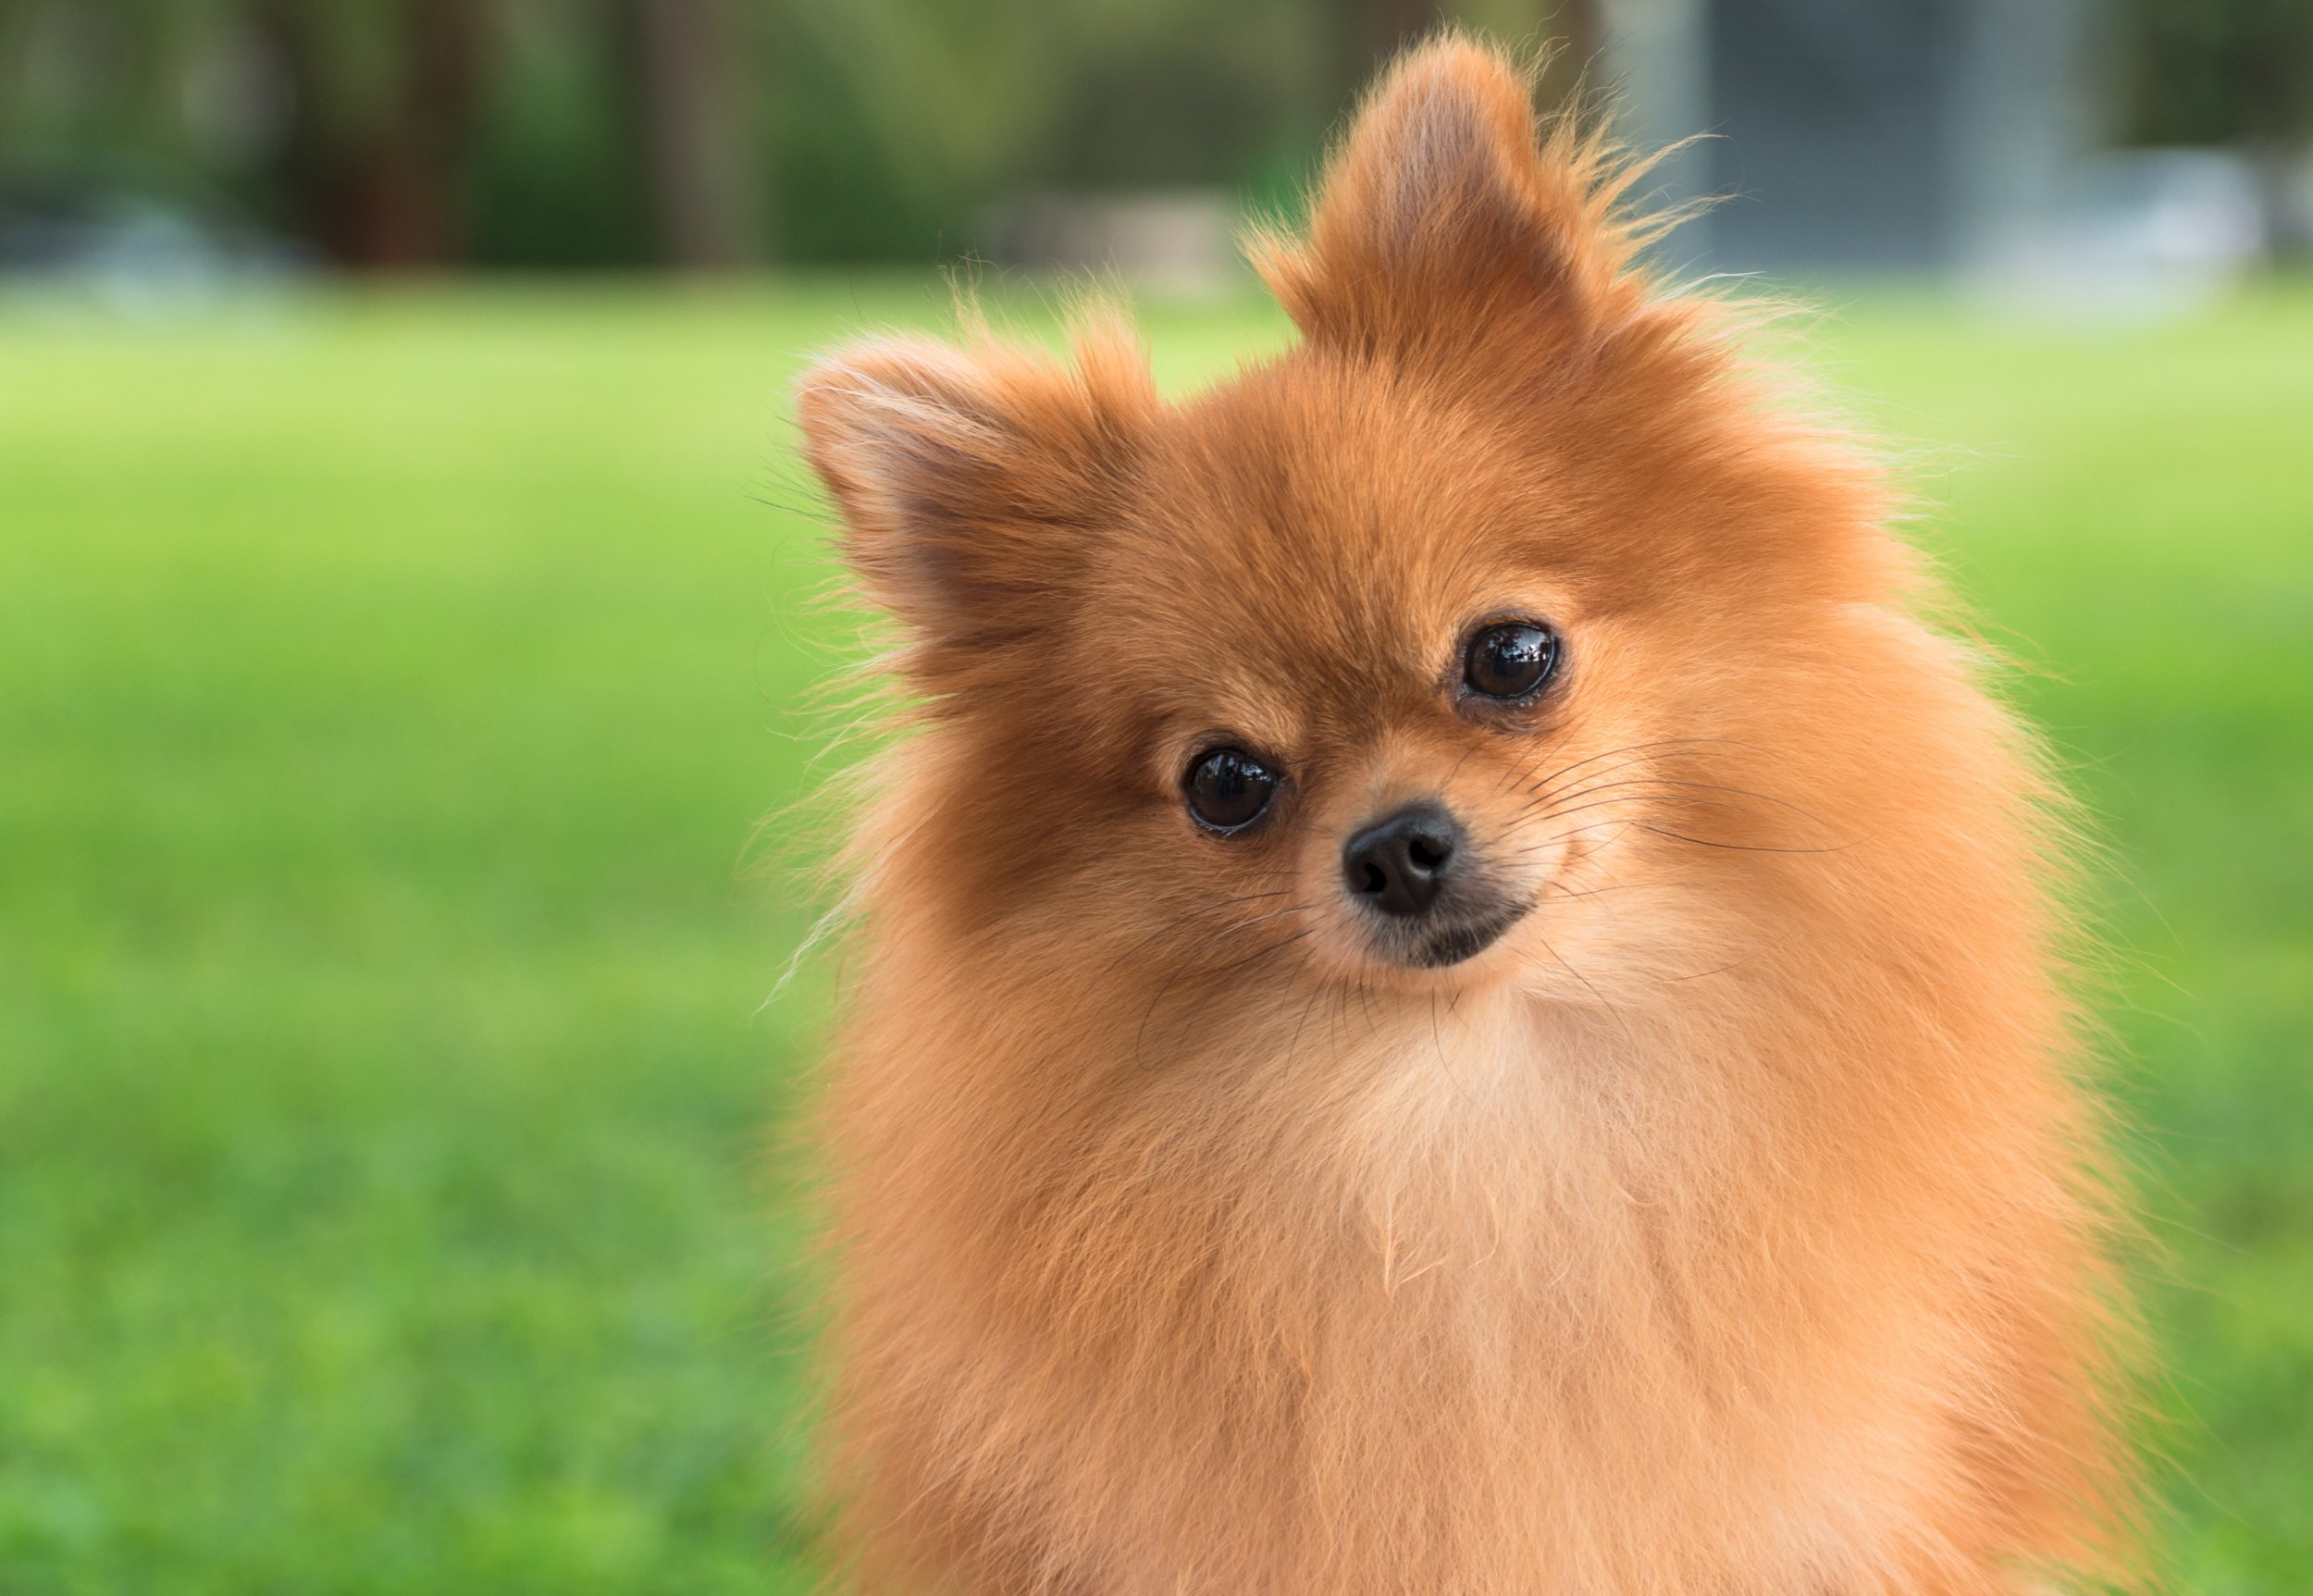 Pomeranian Puppy Kicked to Death by Teenager in Unprovoked